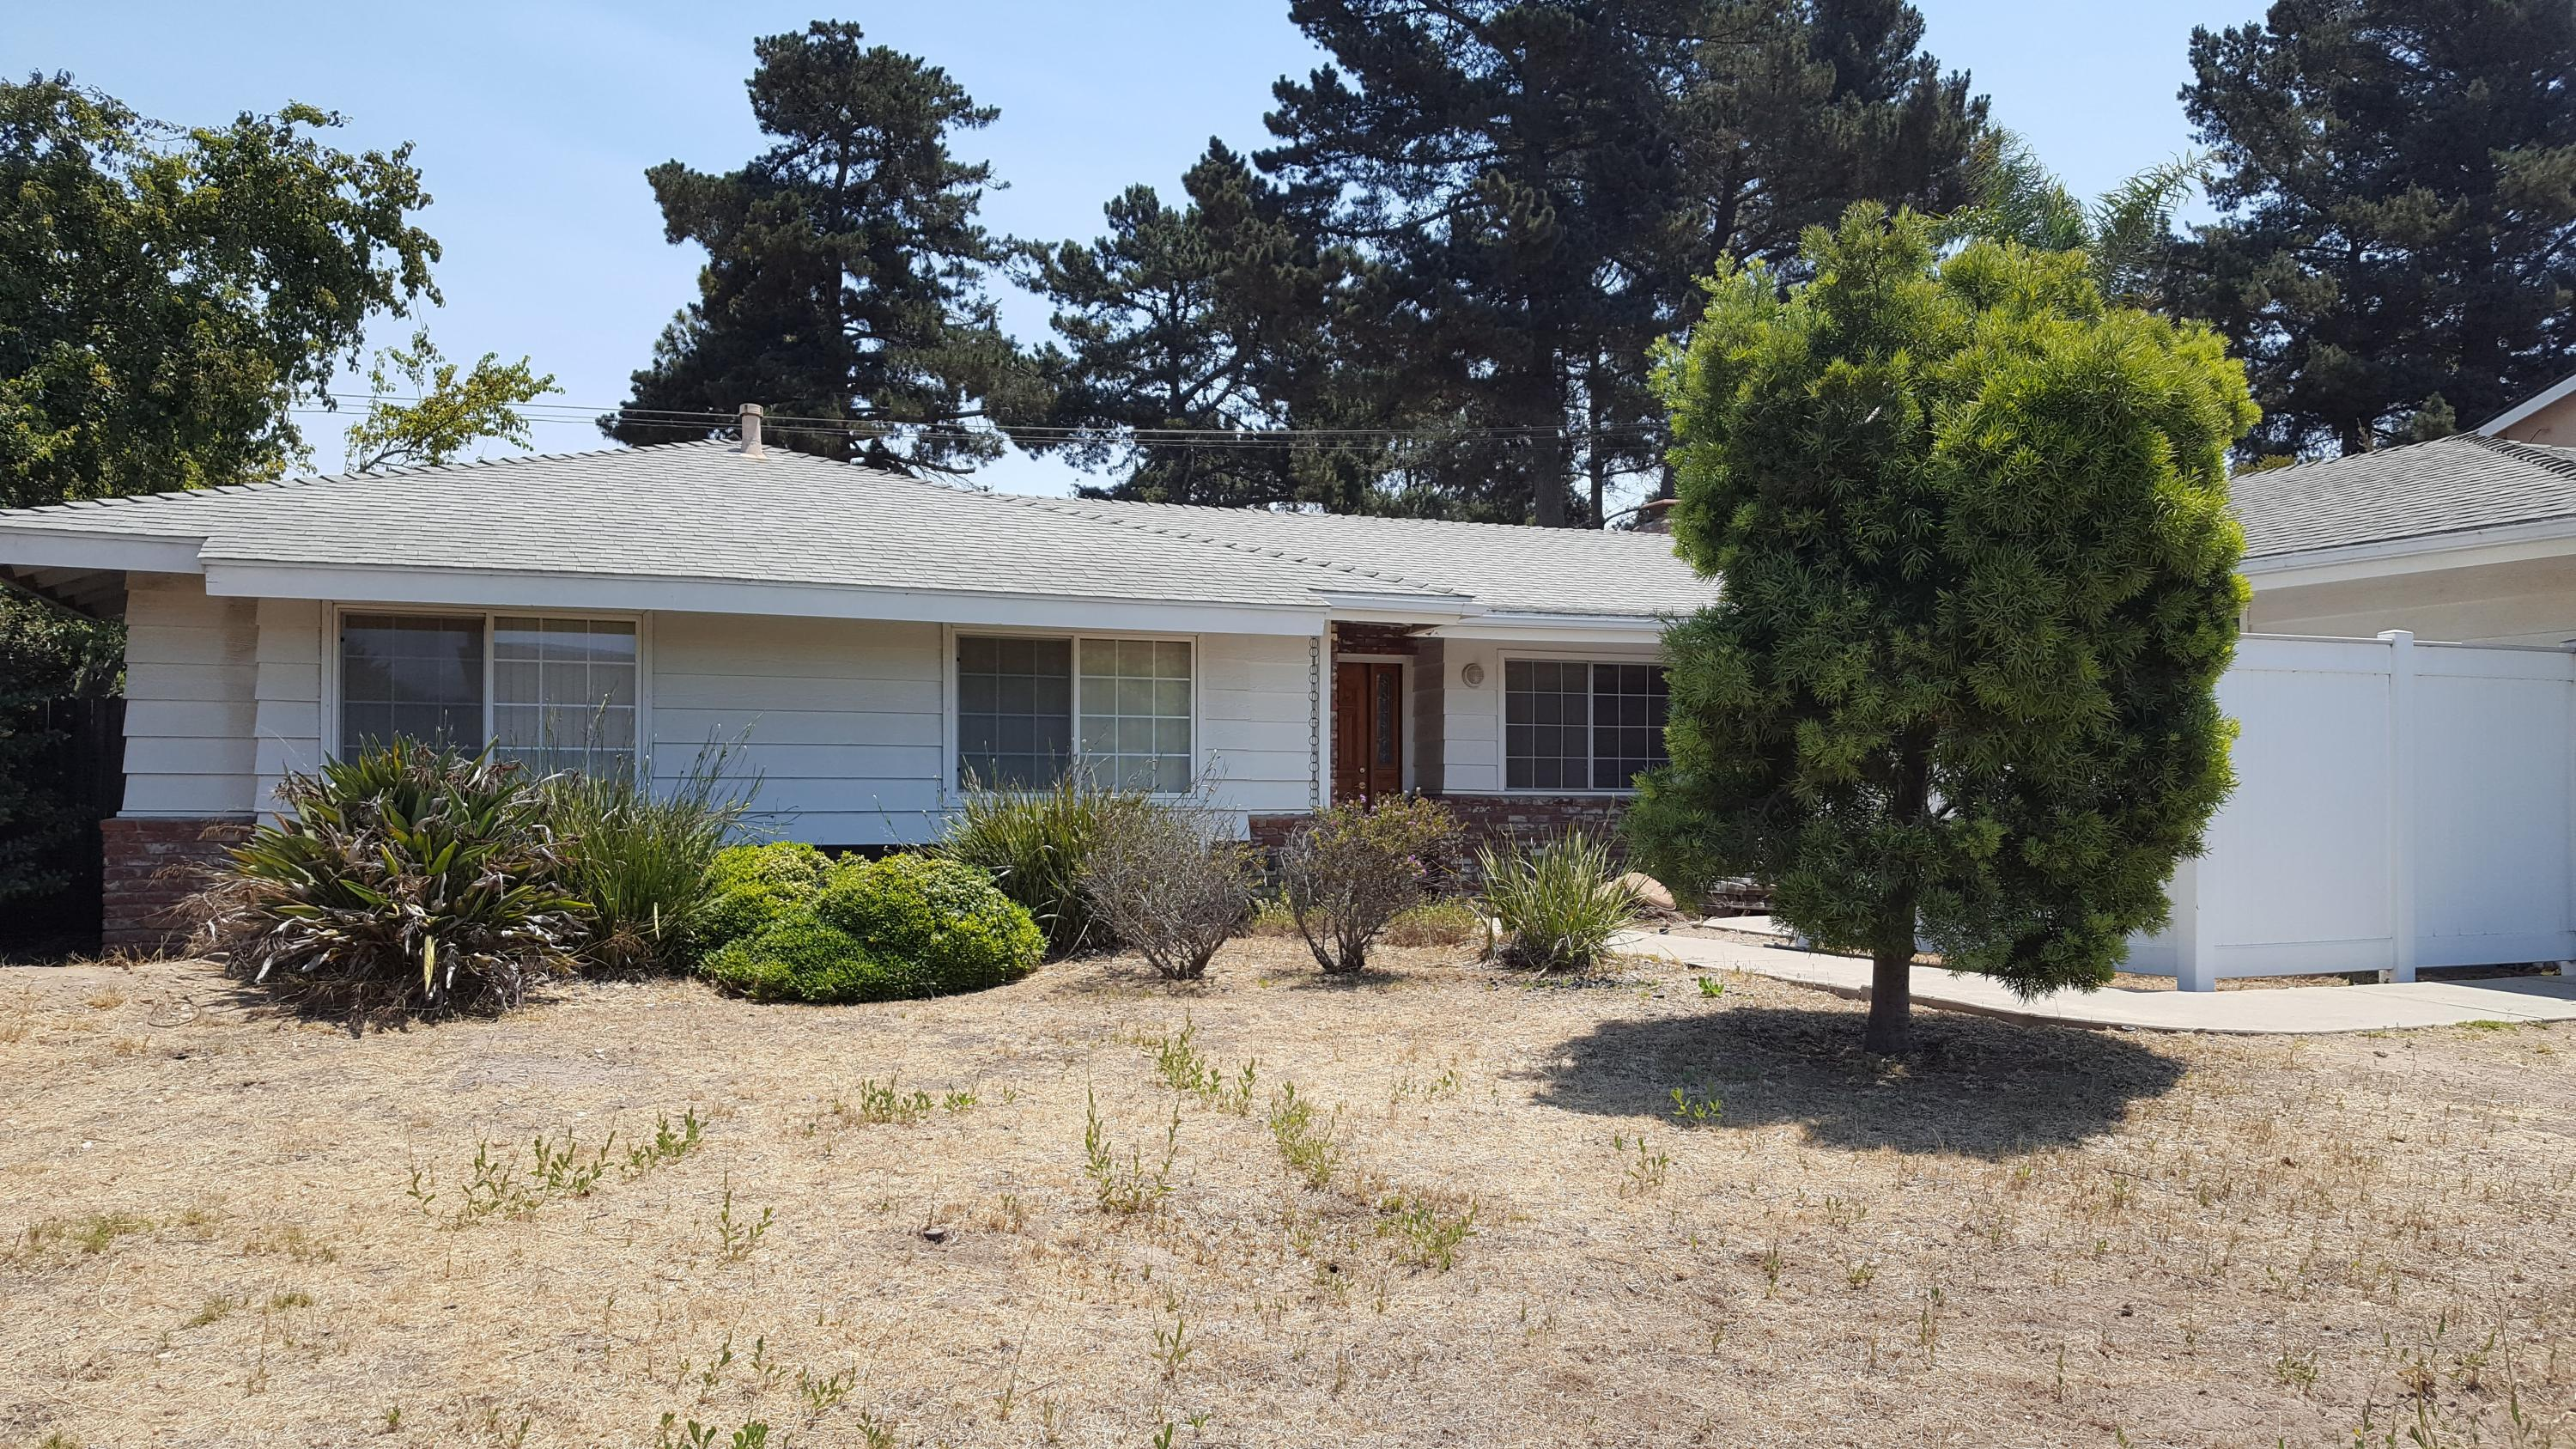 Property photo for 4774 Goodland St Santa Maria, California 93455 - 18-2780